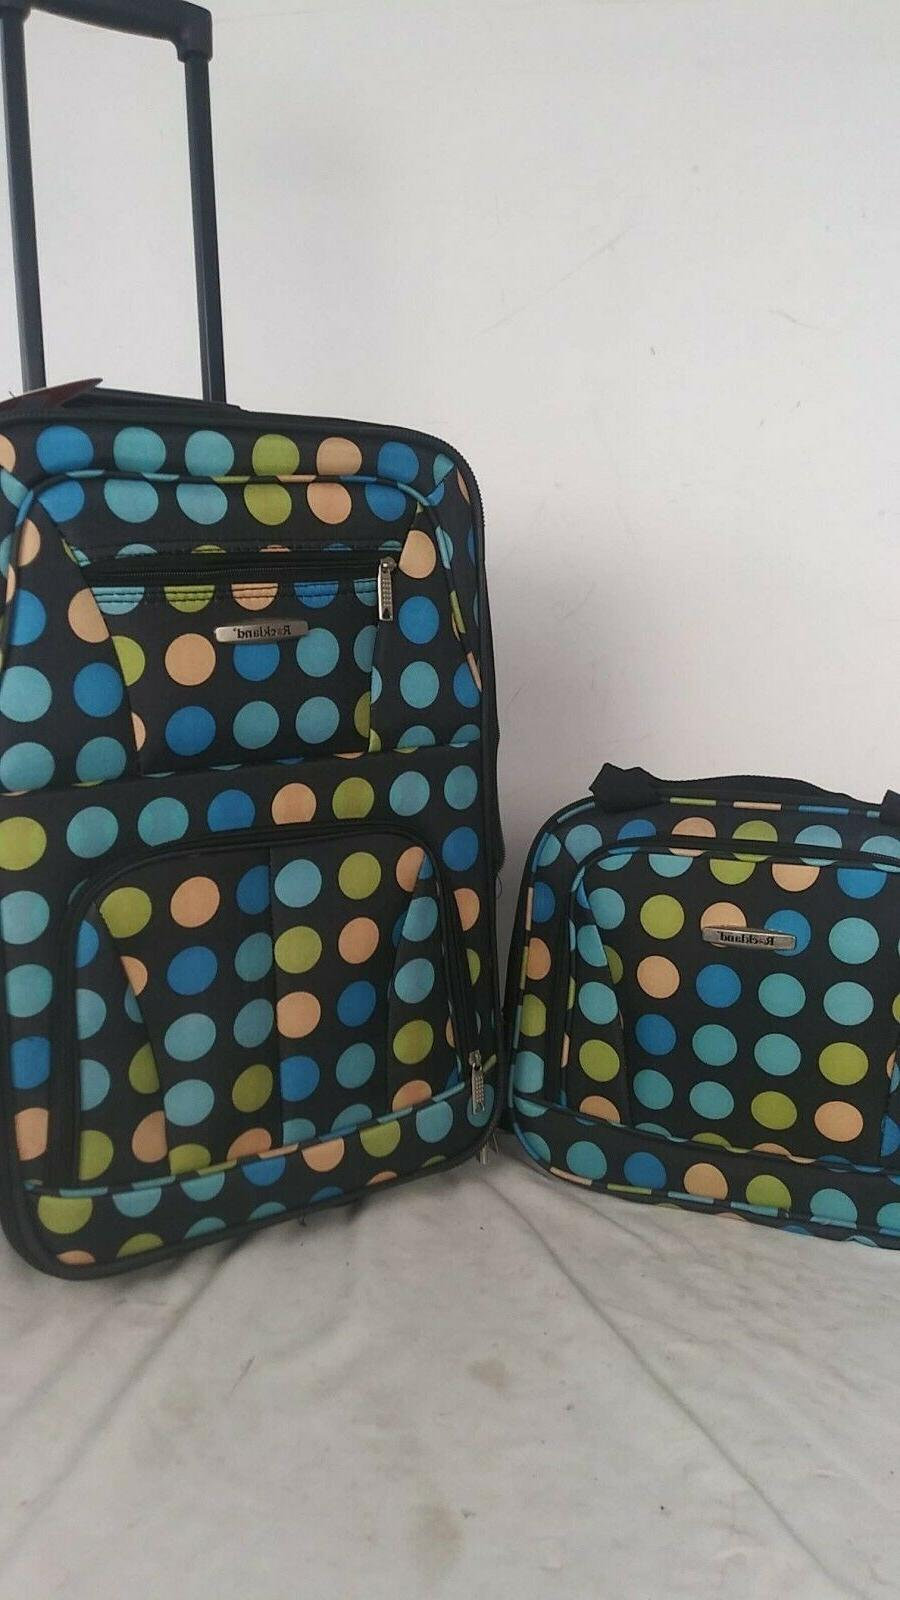 240 new 2 piece carry on luggage